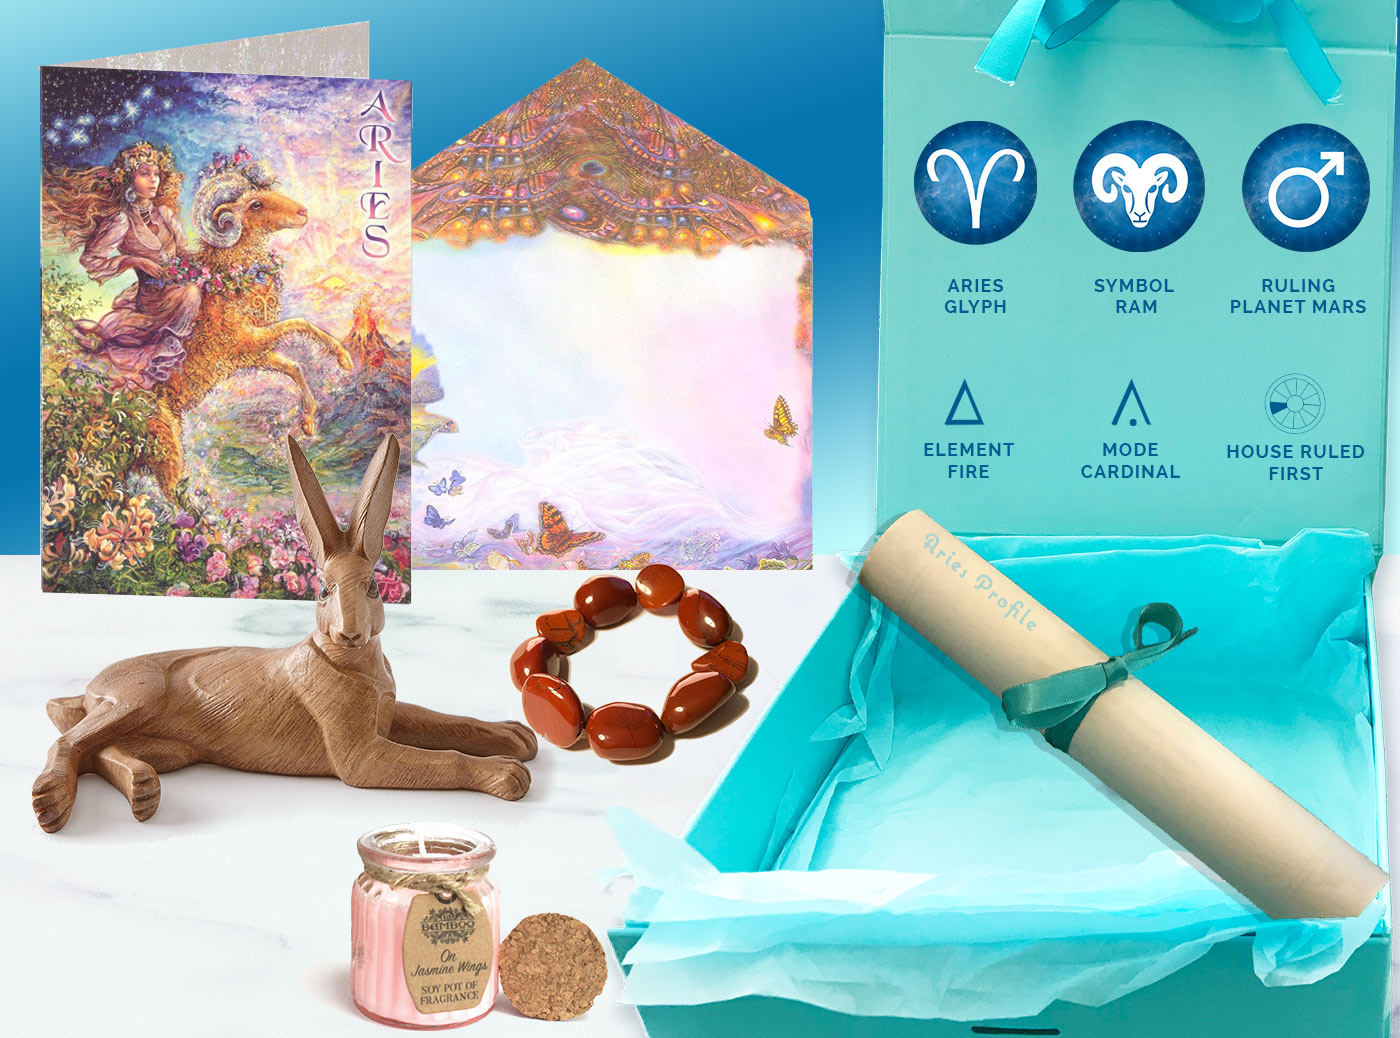 Aries Gift and card